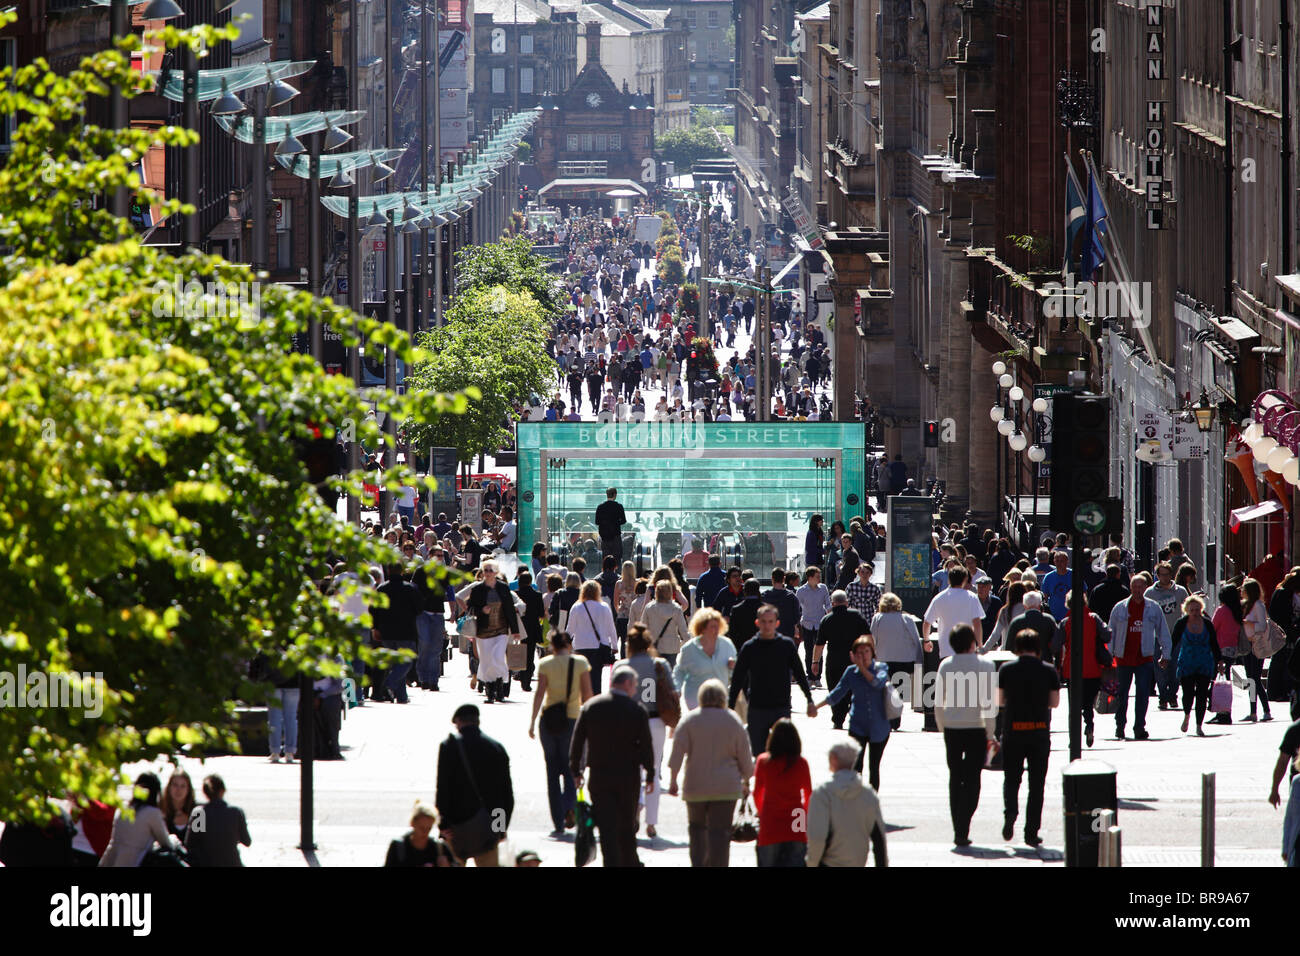 Pedestrians walking on Buchanan Street, Glasgow city centre, Scotland, UK - Stock Image